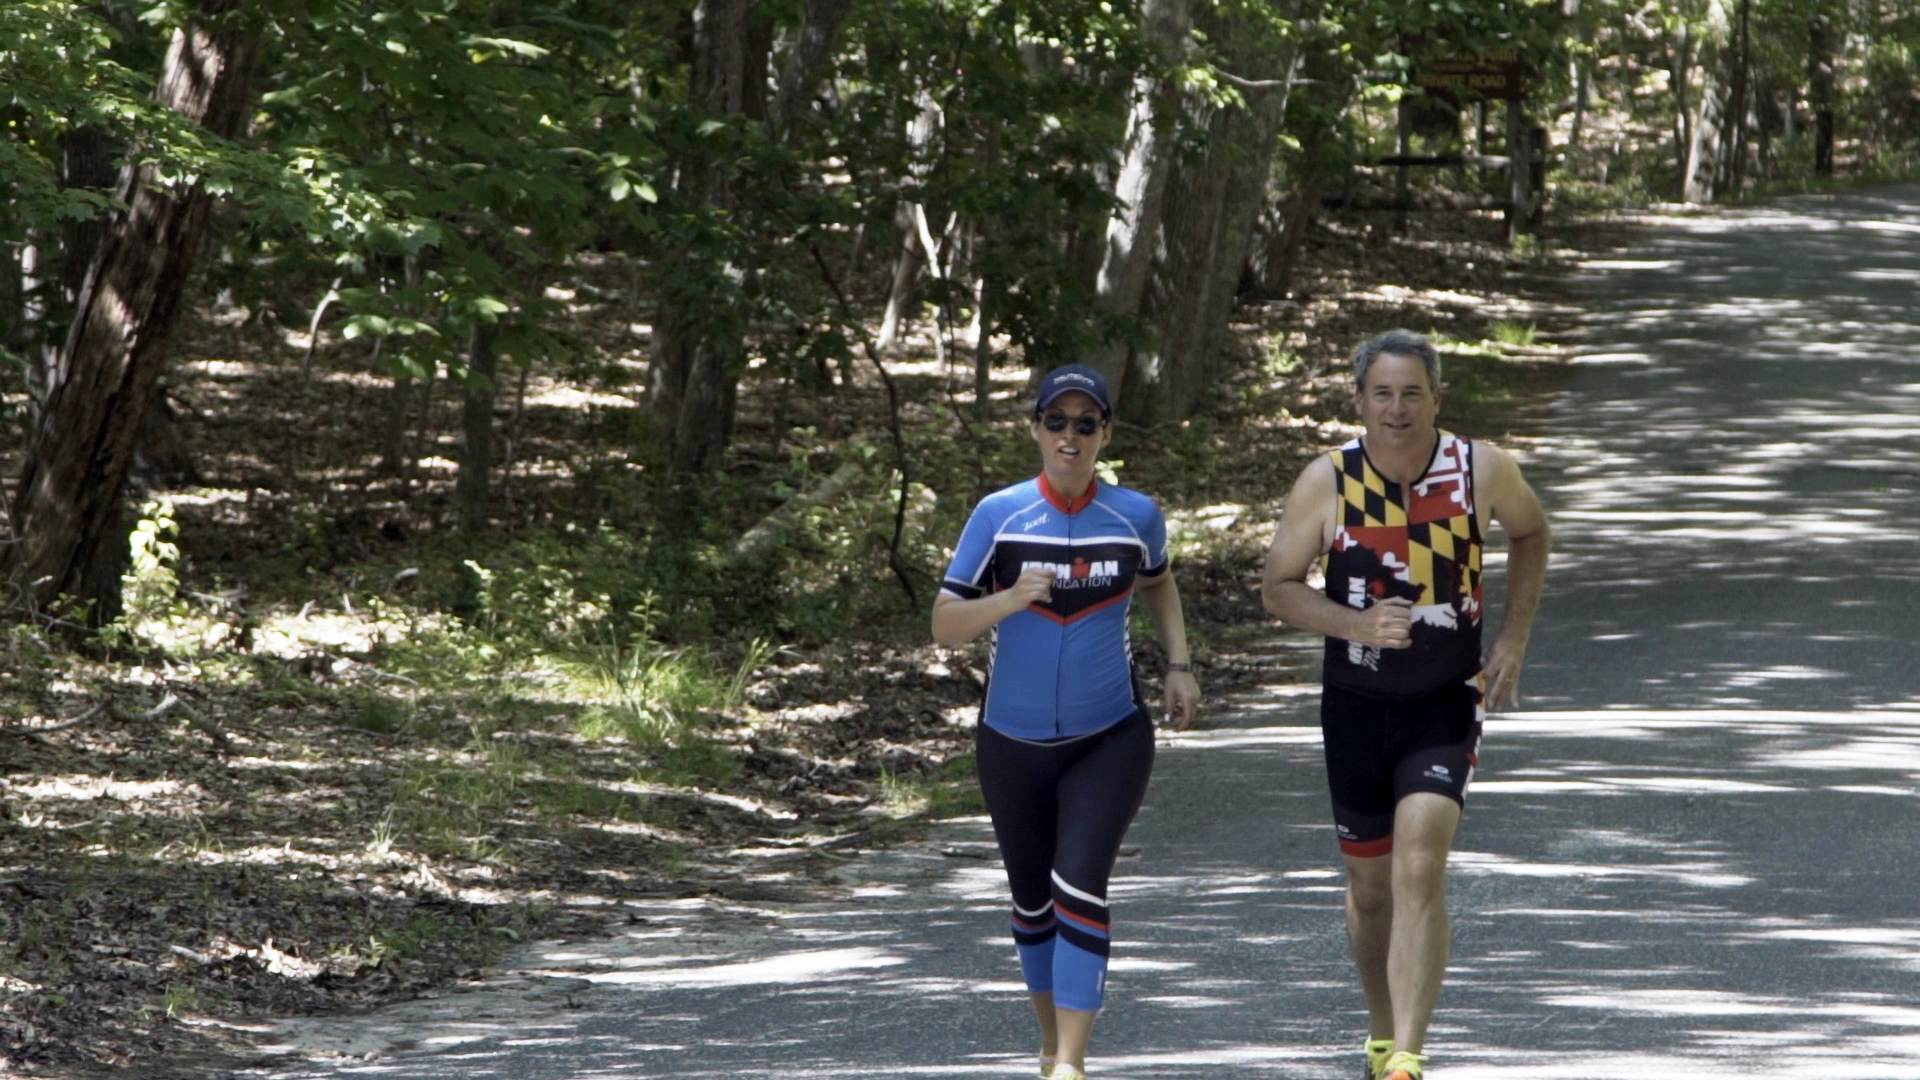 Kevin and training partner running along a tree lined road, in training for triathlons.